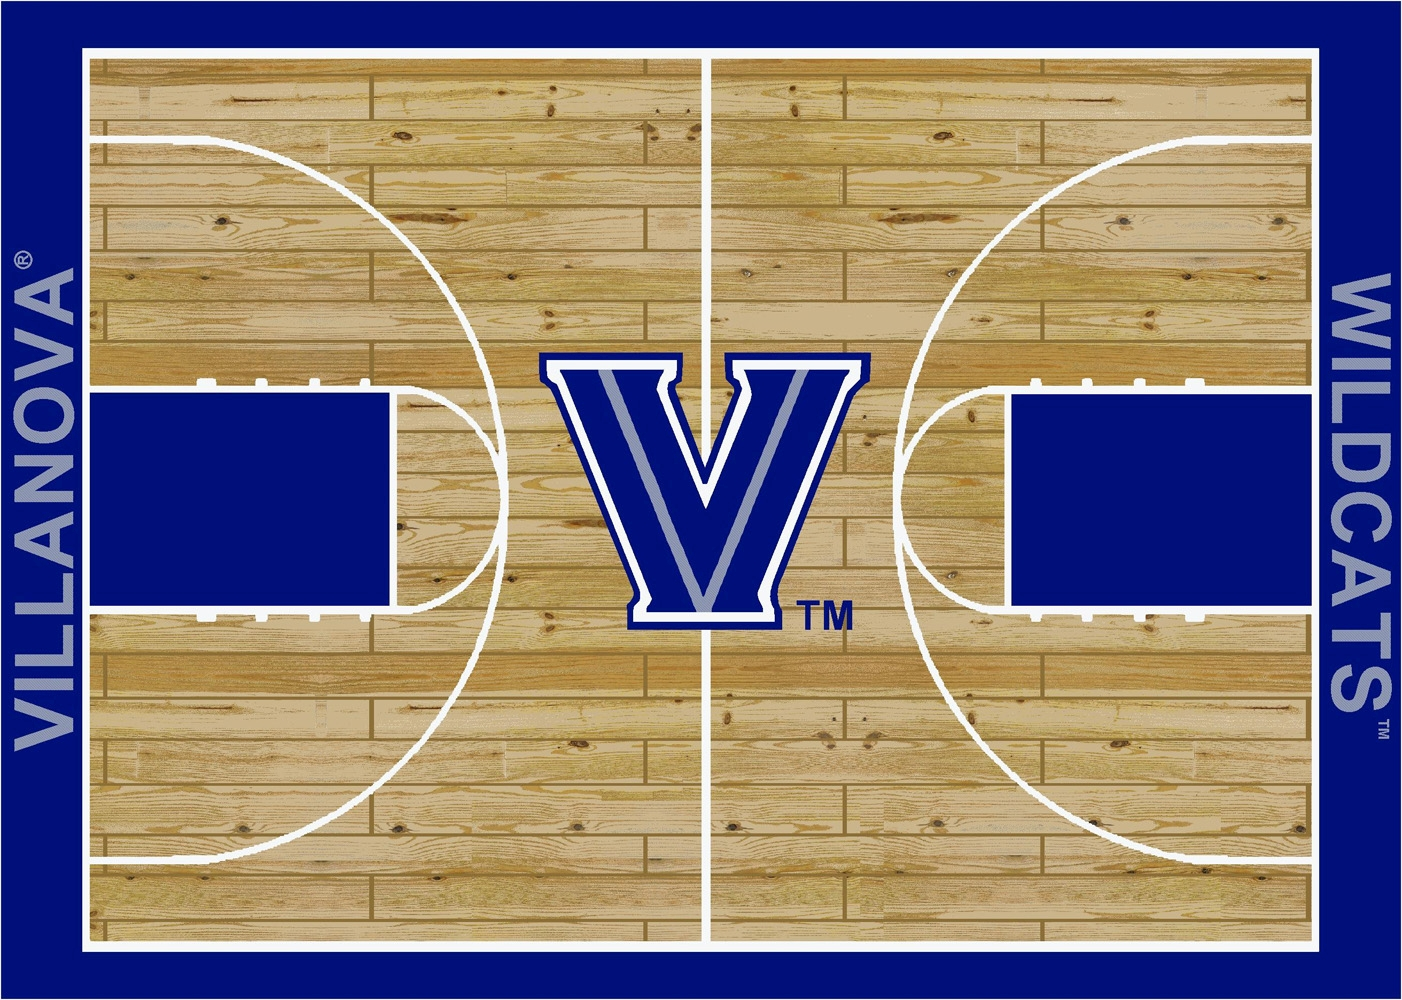 College Basketball Court Villanova 100 Stainmaster